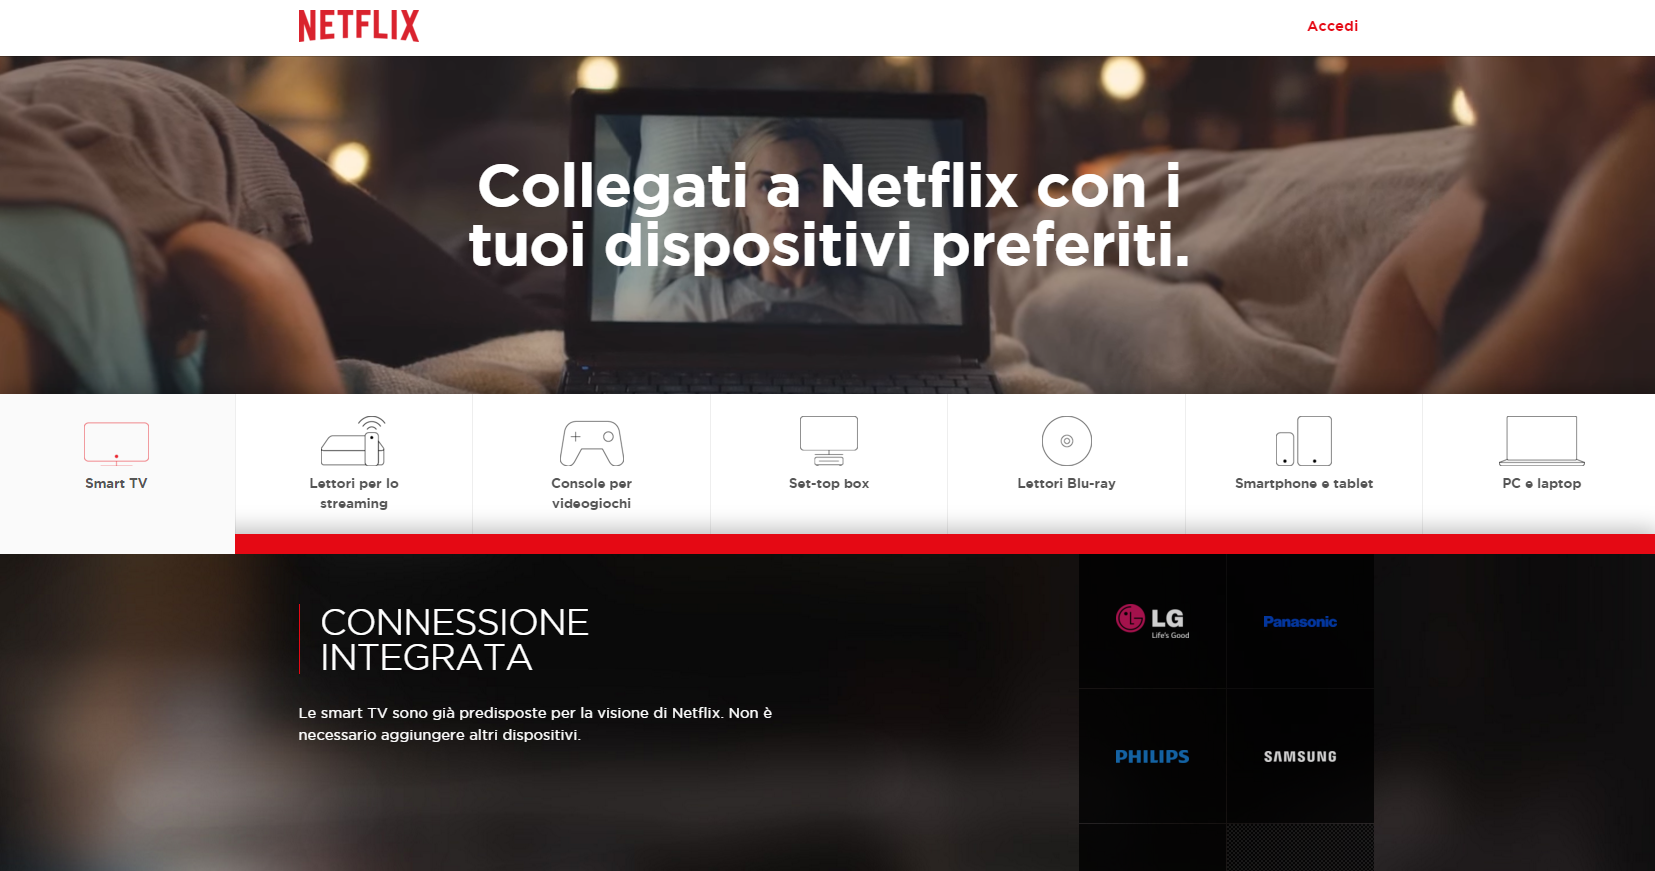 Netflix Dispositivi